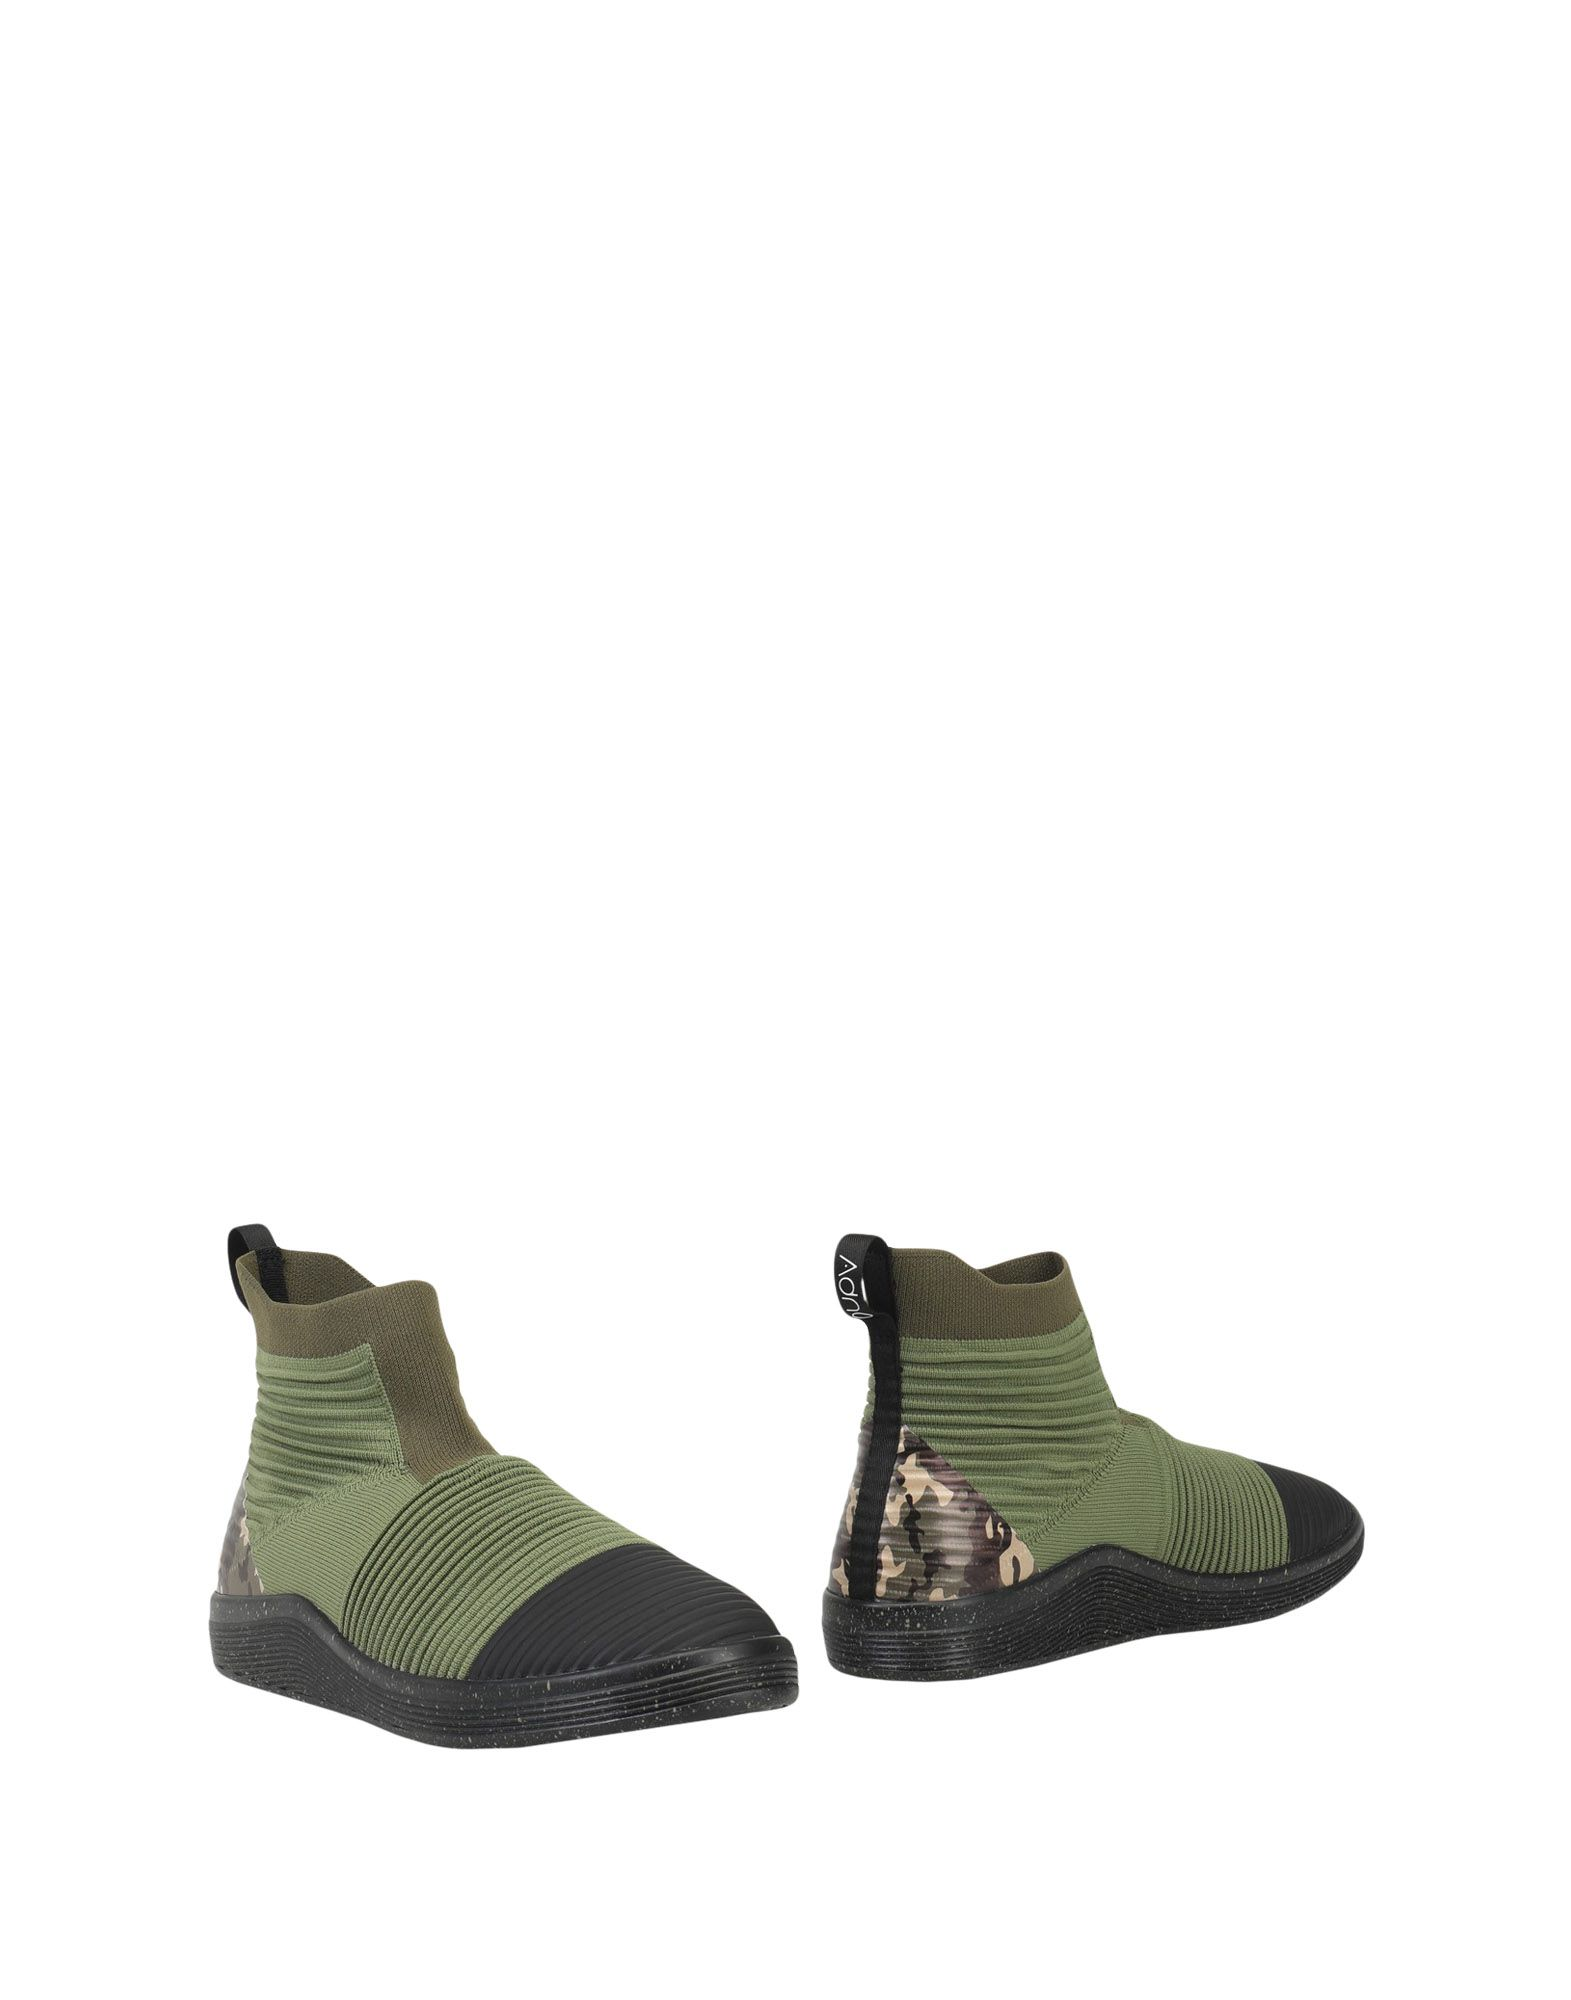 Adno® Ao Rib 5.10 - Boots - on Men Adno® Boots online on -  Australia - 11340463LW 0006a9